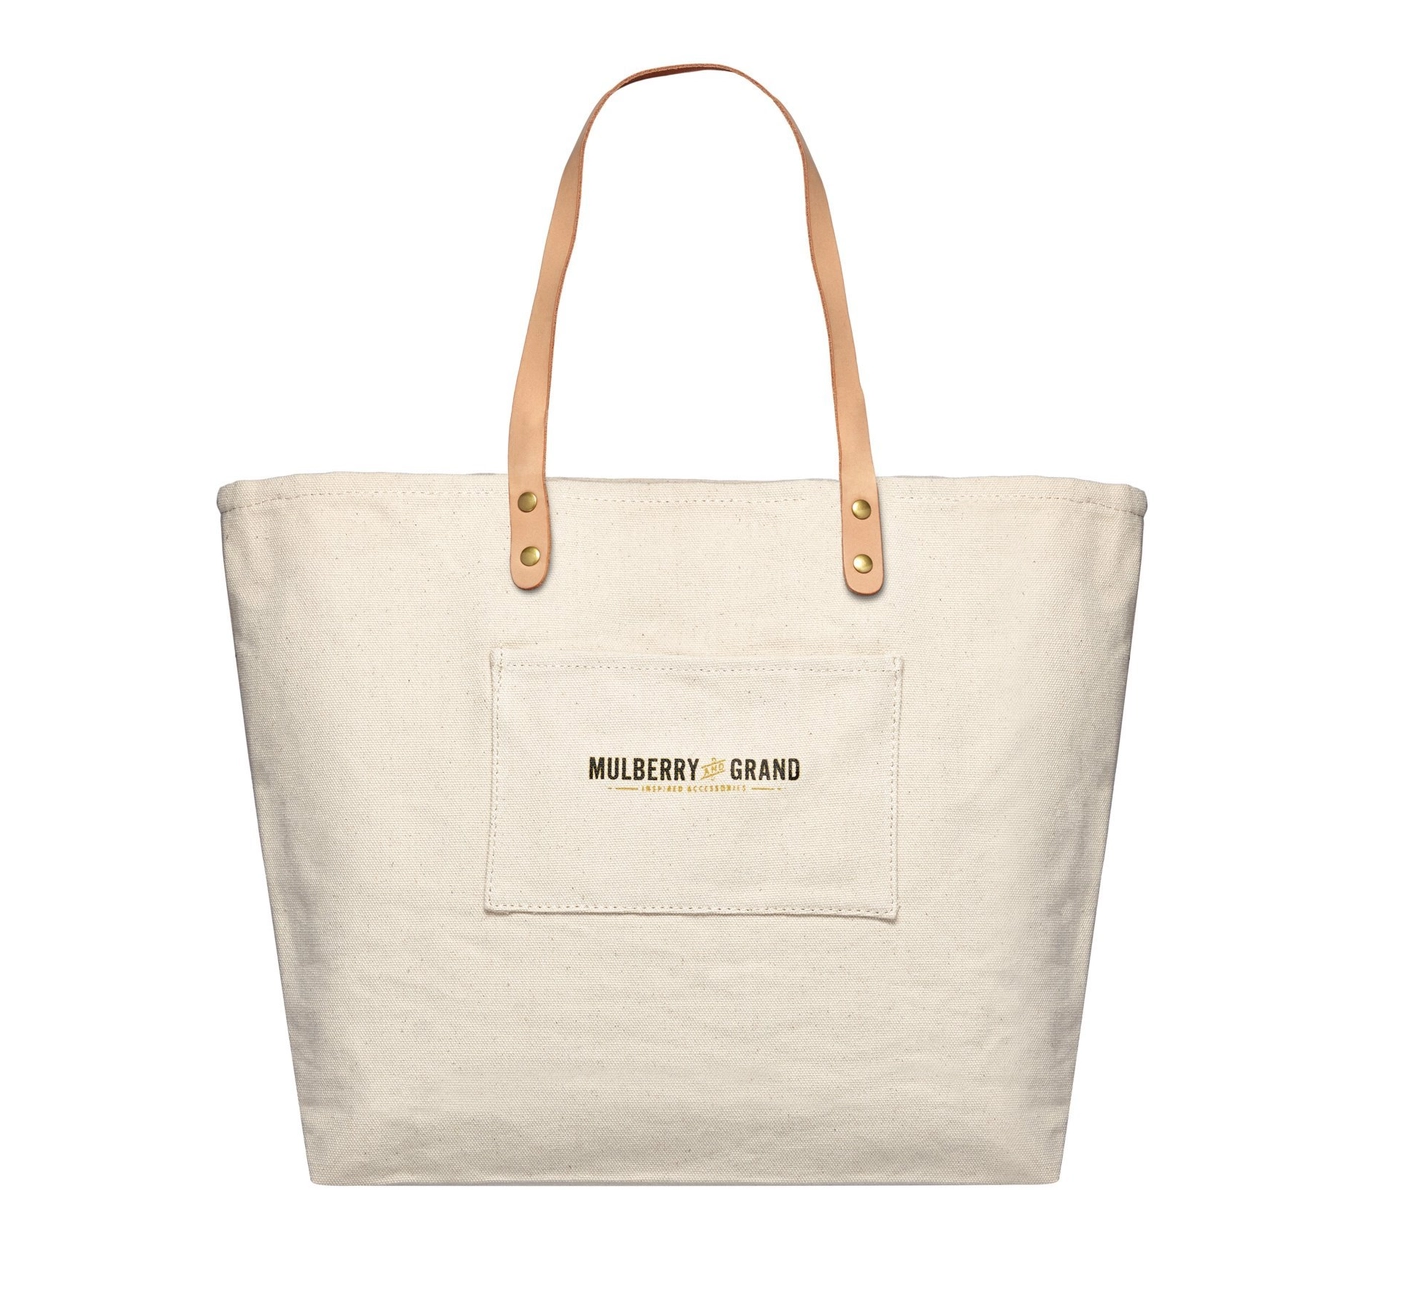 Mulberry & Grand NY Illustration Canvas Tote Bag